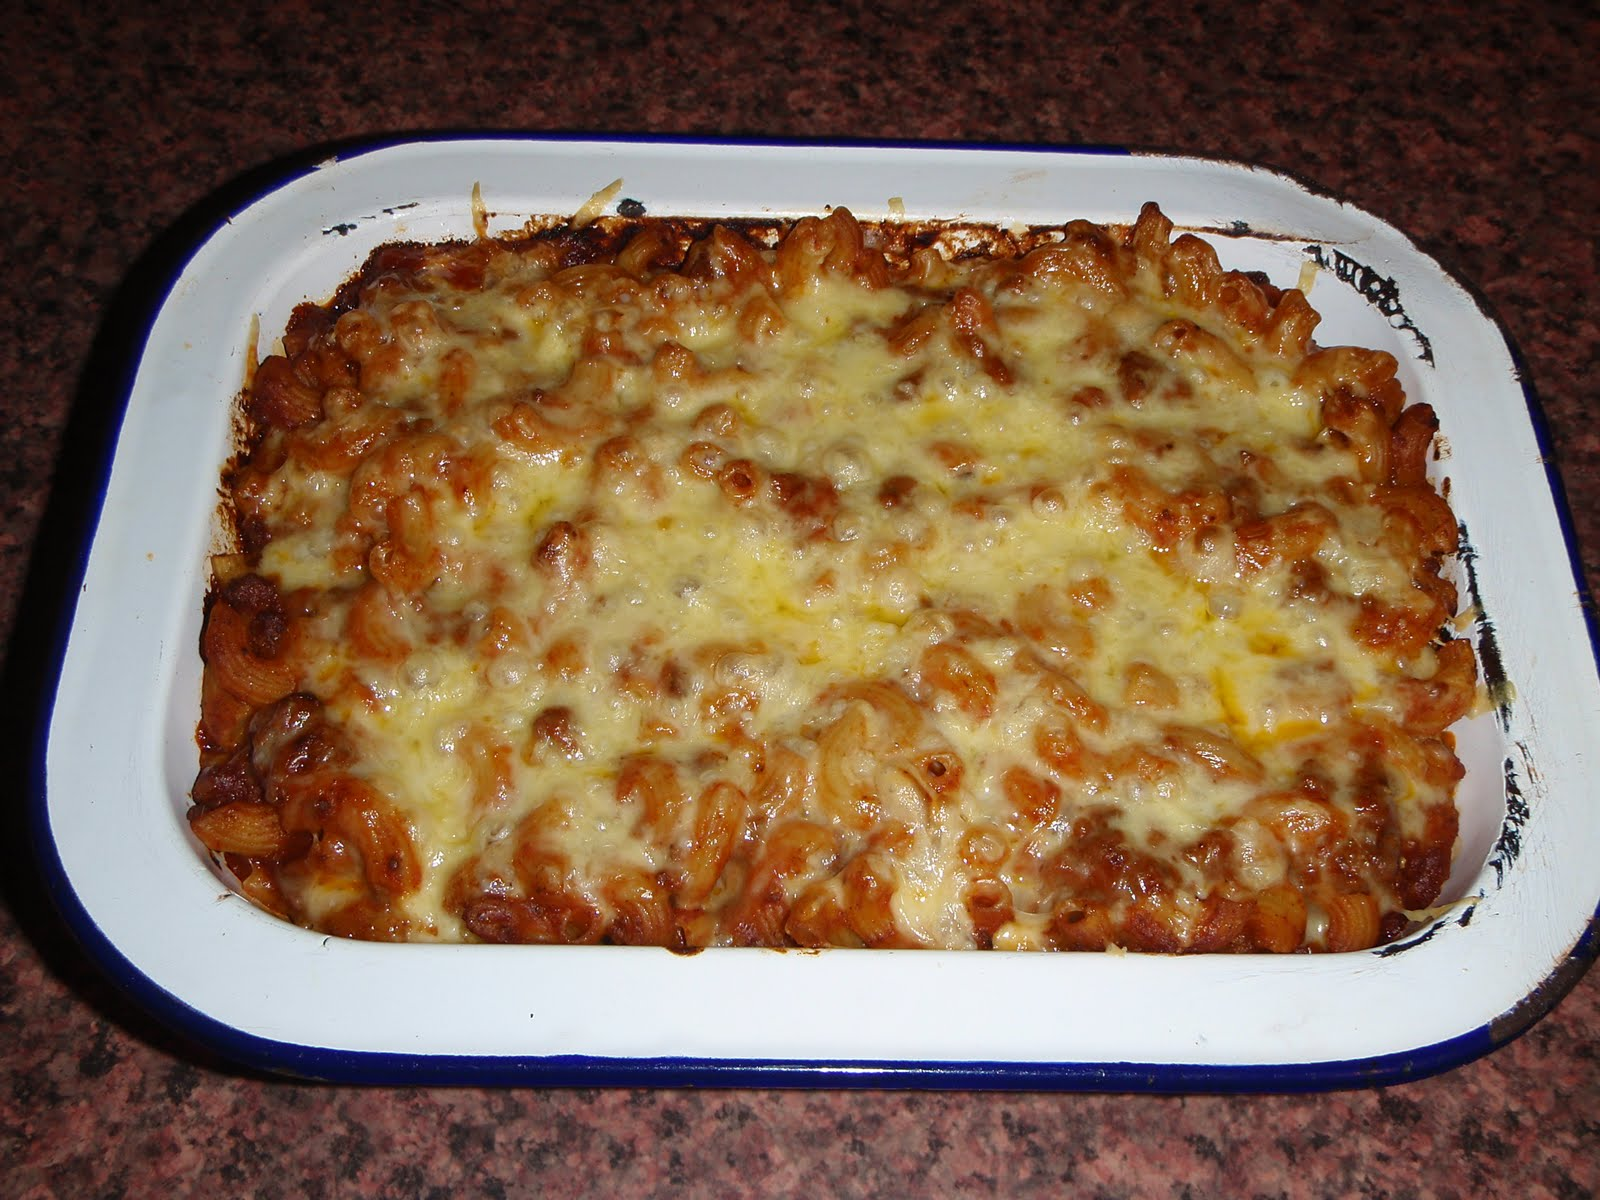 ingredients 1 cup uncooked elbow macaroni 1 lb 500 g ground beef 1 ...